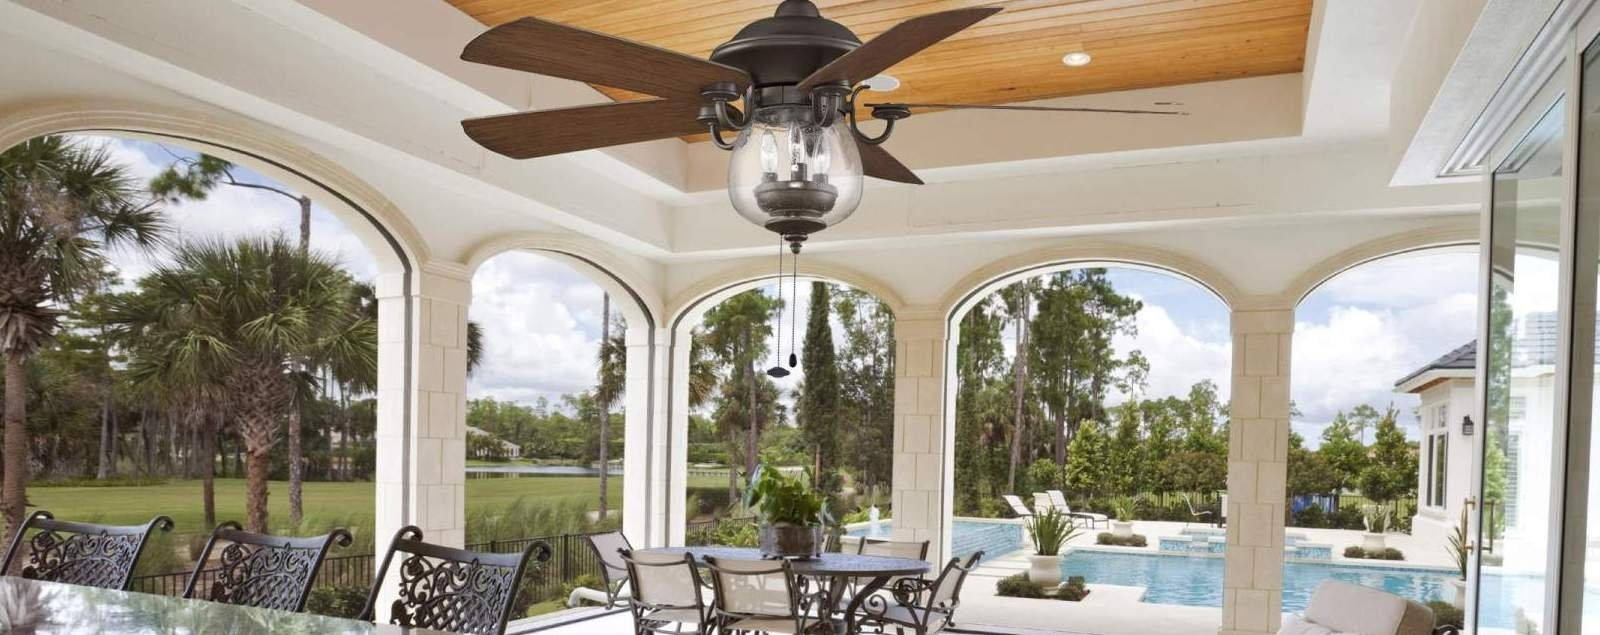 High End Outdoor Ceiling Fans For Most Up To Date Outdoor Ceiling Fans – Shop Wet, Dry, And Damp Rated Outdoor Fans (Gallery 1 of 20)